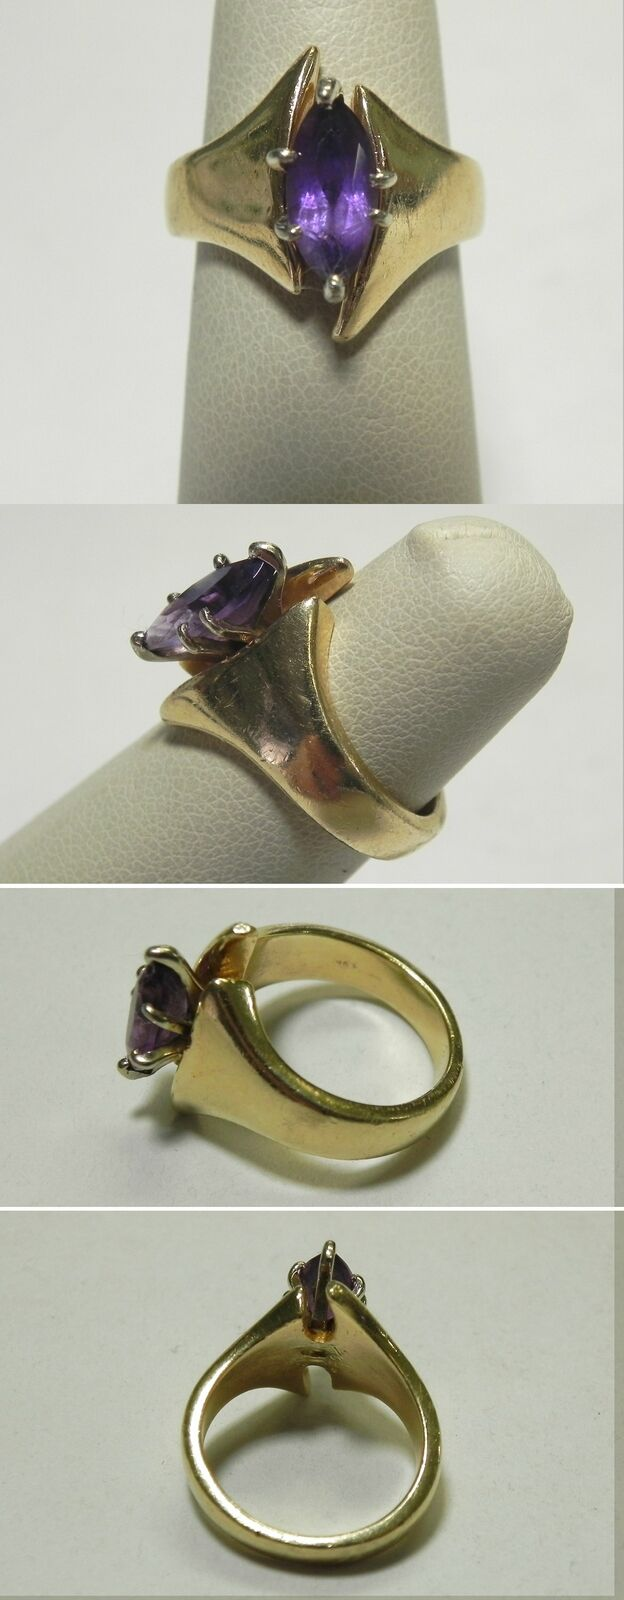 C866 Vintage 14K Solid Yellow gold Marquise Cut Amethyst Open Bypass Ring, Sz 5